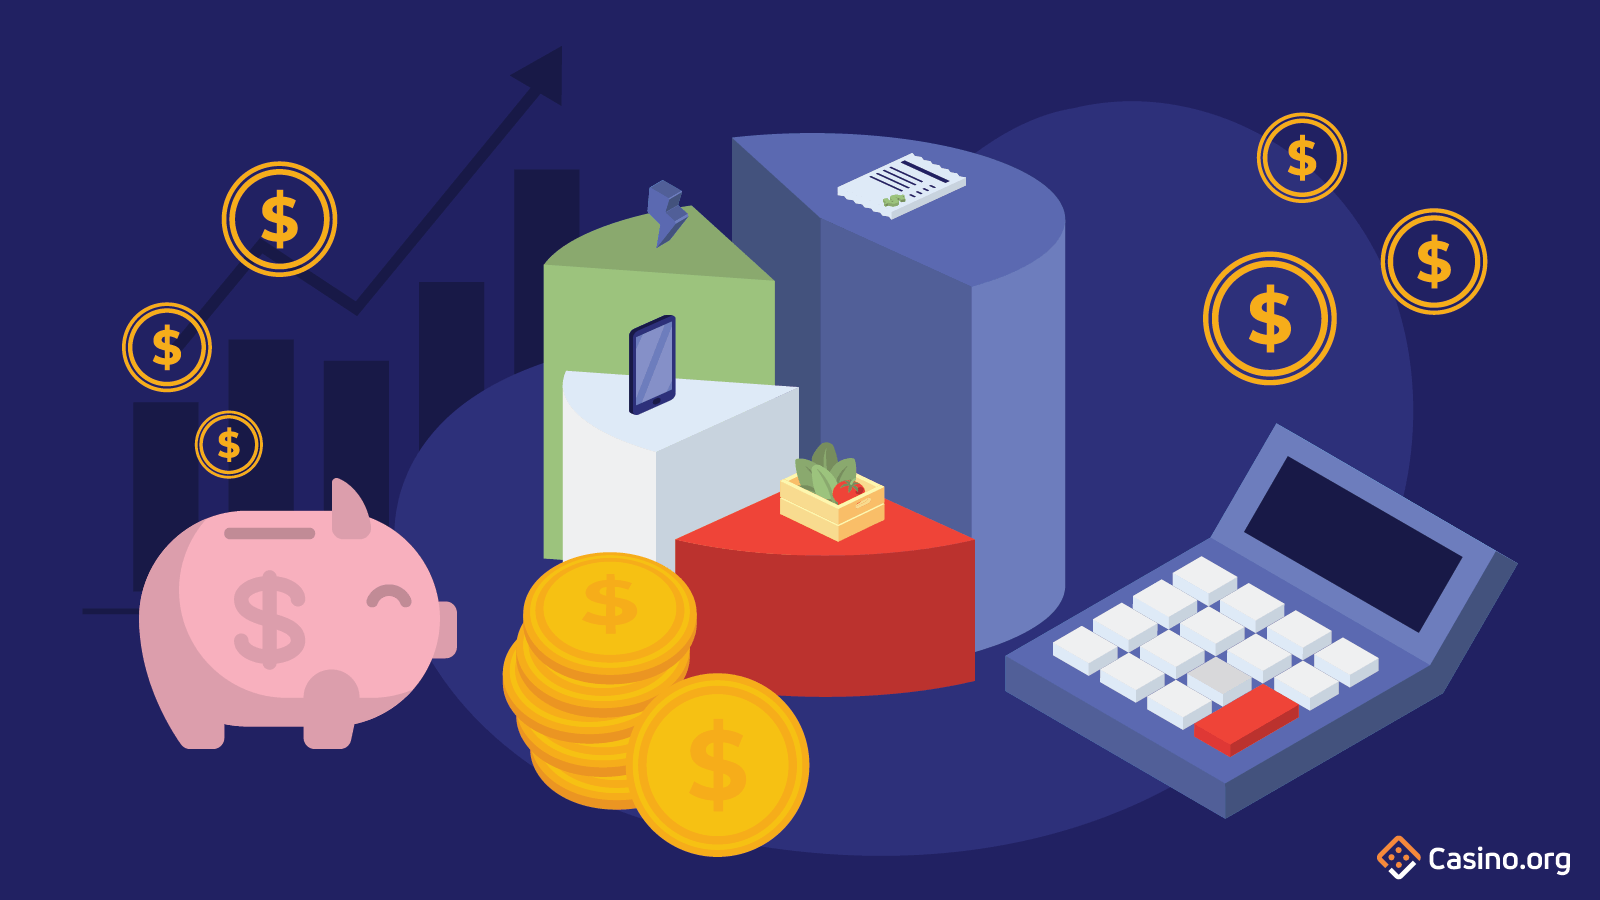 Image of piggy bank, pie chart and calculator to show finance management.